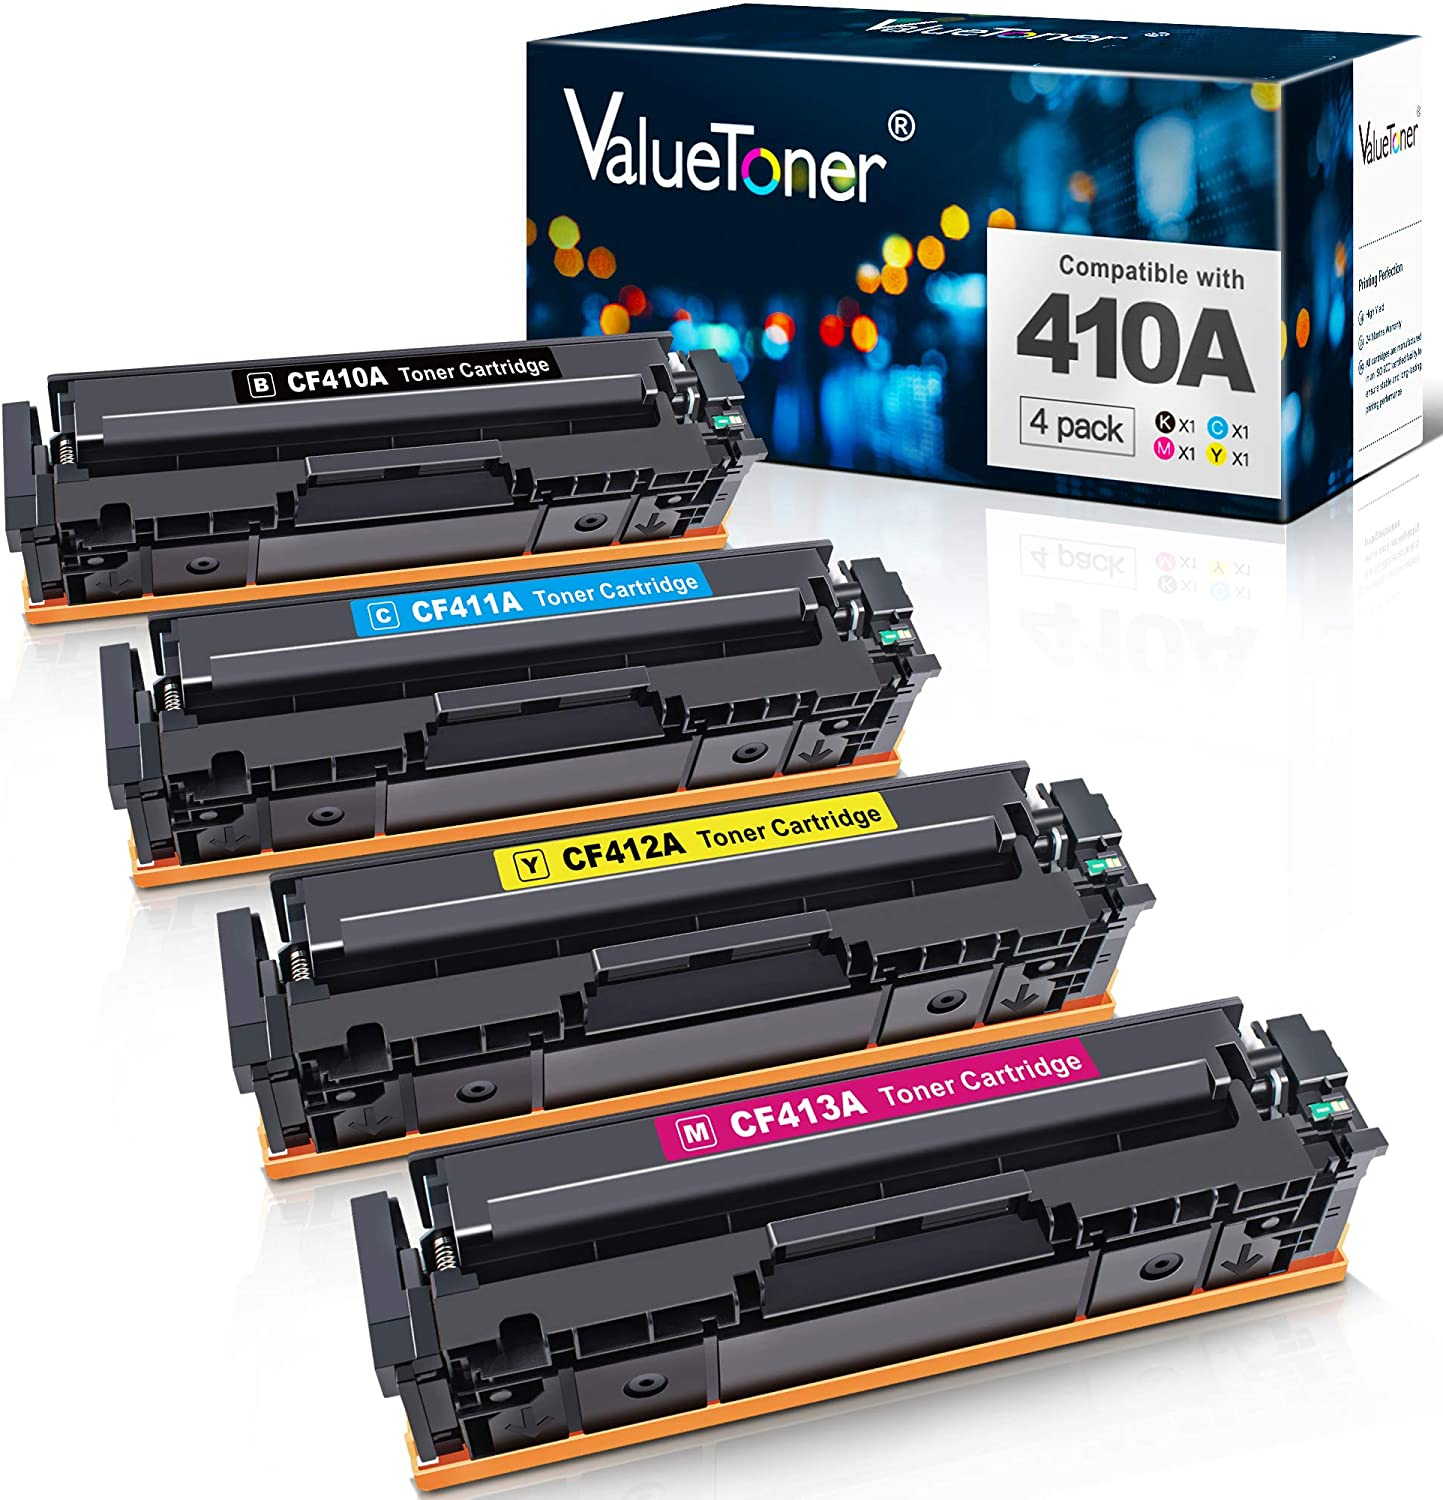 Valuetoner Compatible Toner Cartridge Replacement for HP 410A CF410A CF411A CF412A CF413A to use with Color Laserjet Pro MFP-M477fdw-M477fdn M477fnw-M452dn-M452nw M452dw M477 M452 Printer (4-Pack)